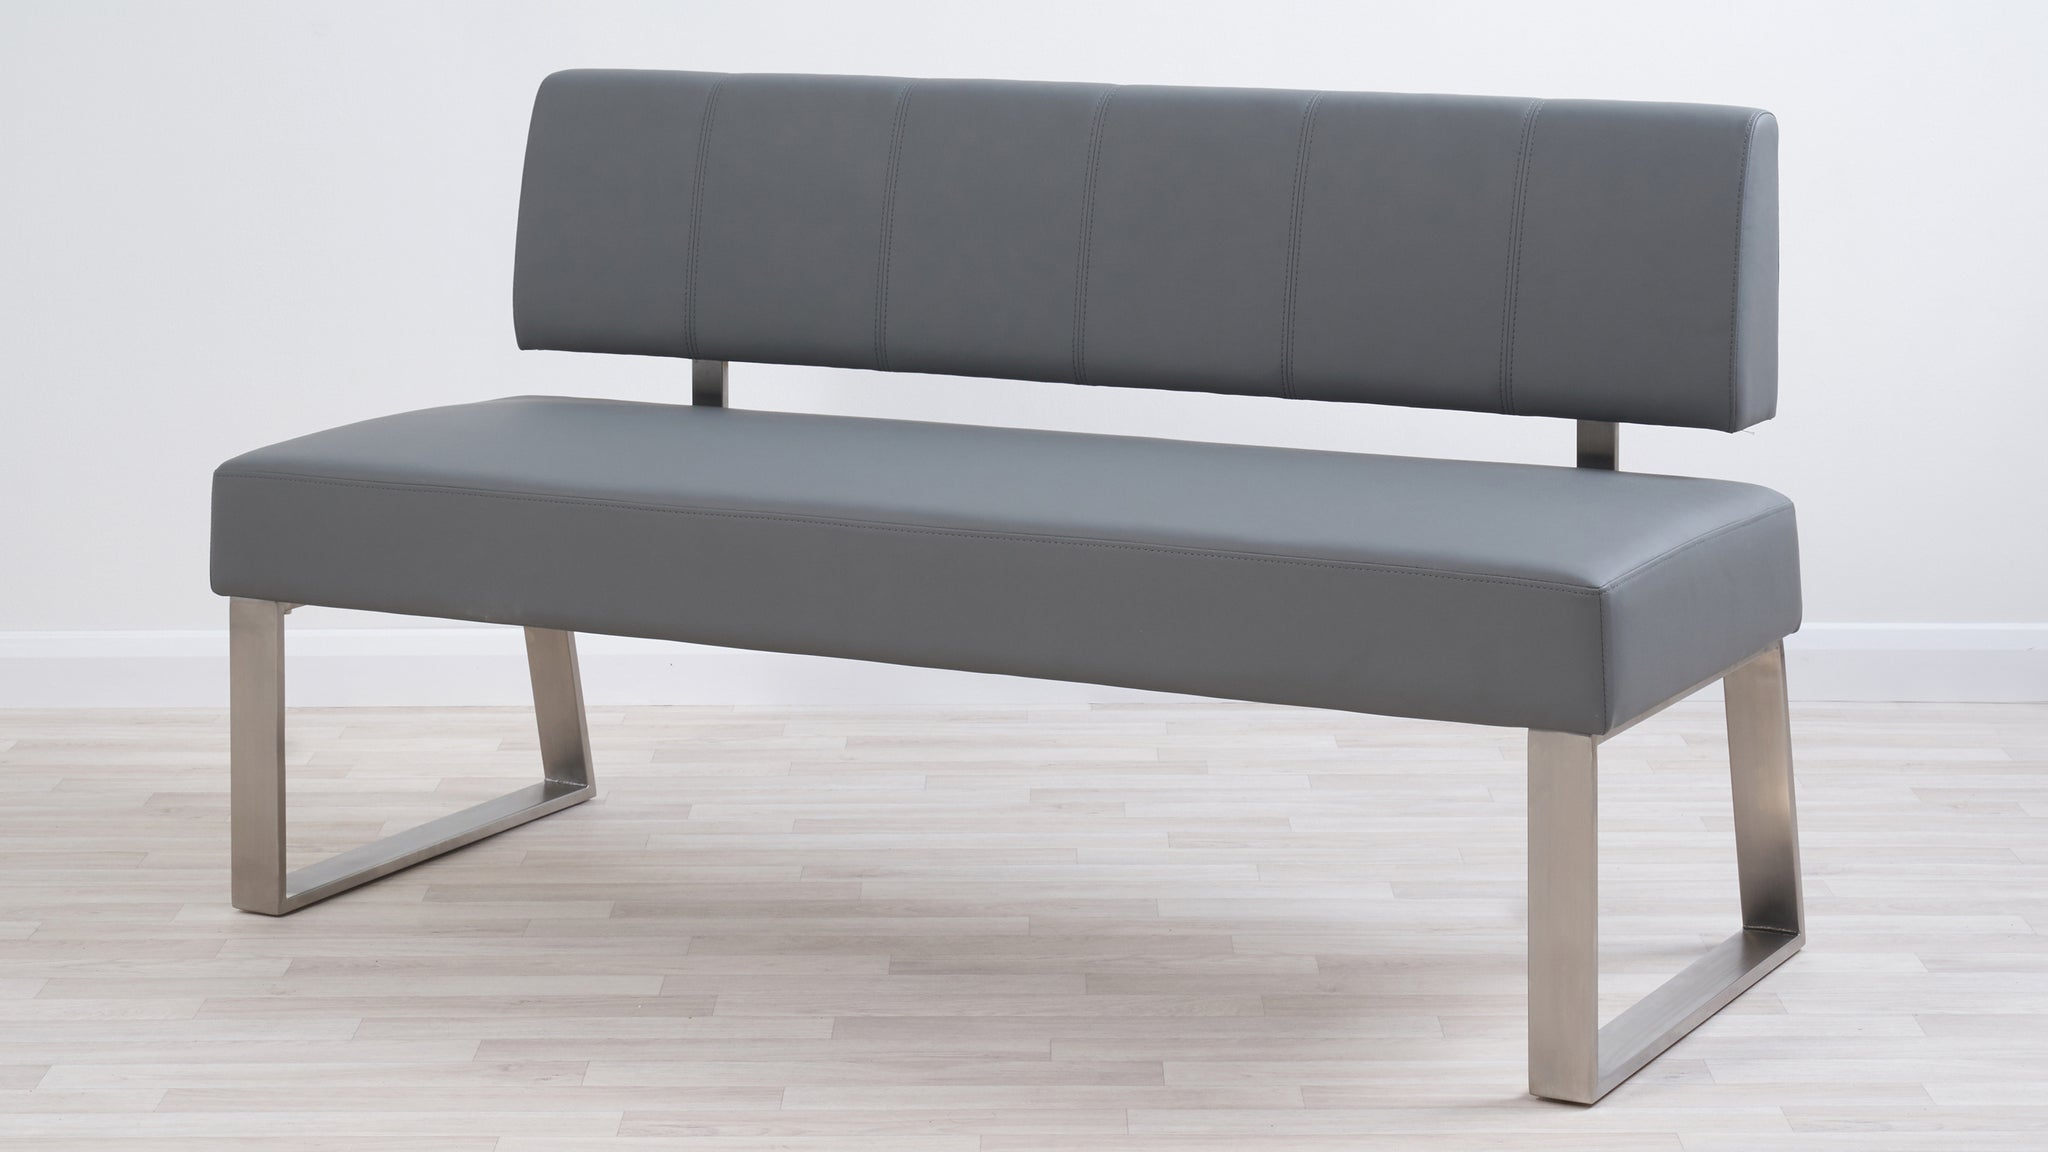 Dover 3 Seater Mid Grey Faux Leather Bench With Backrest